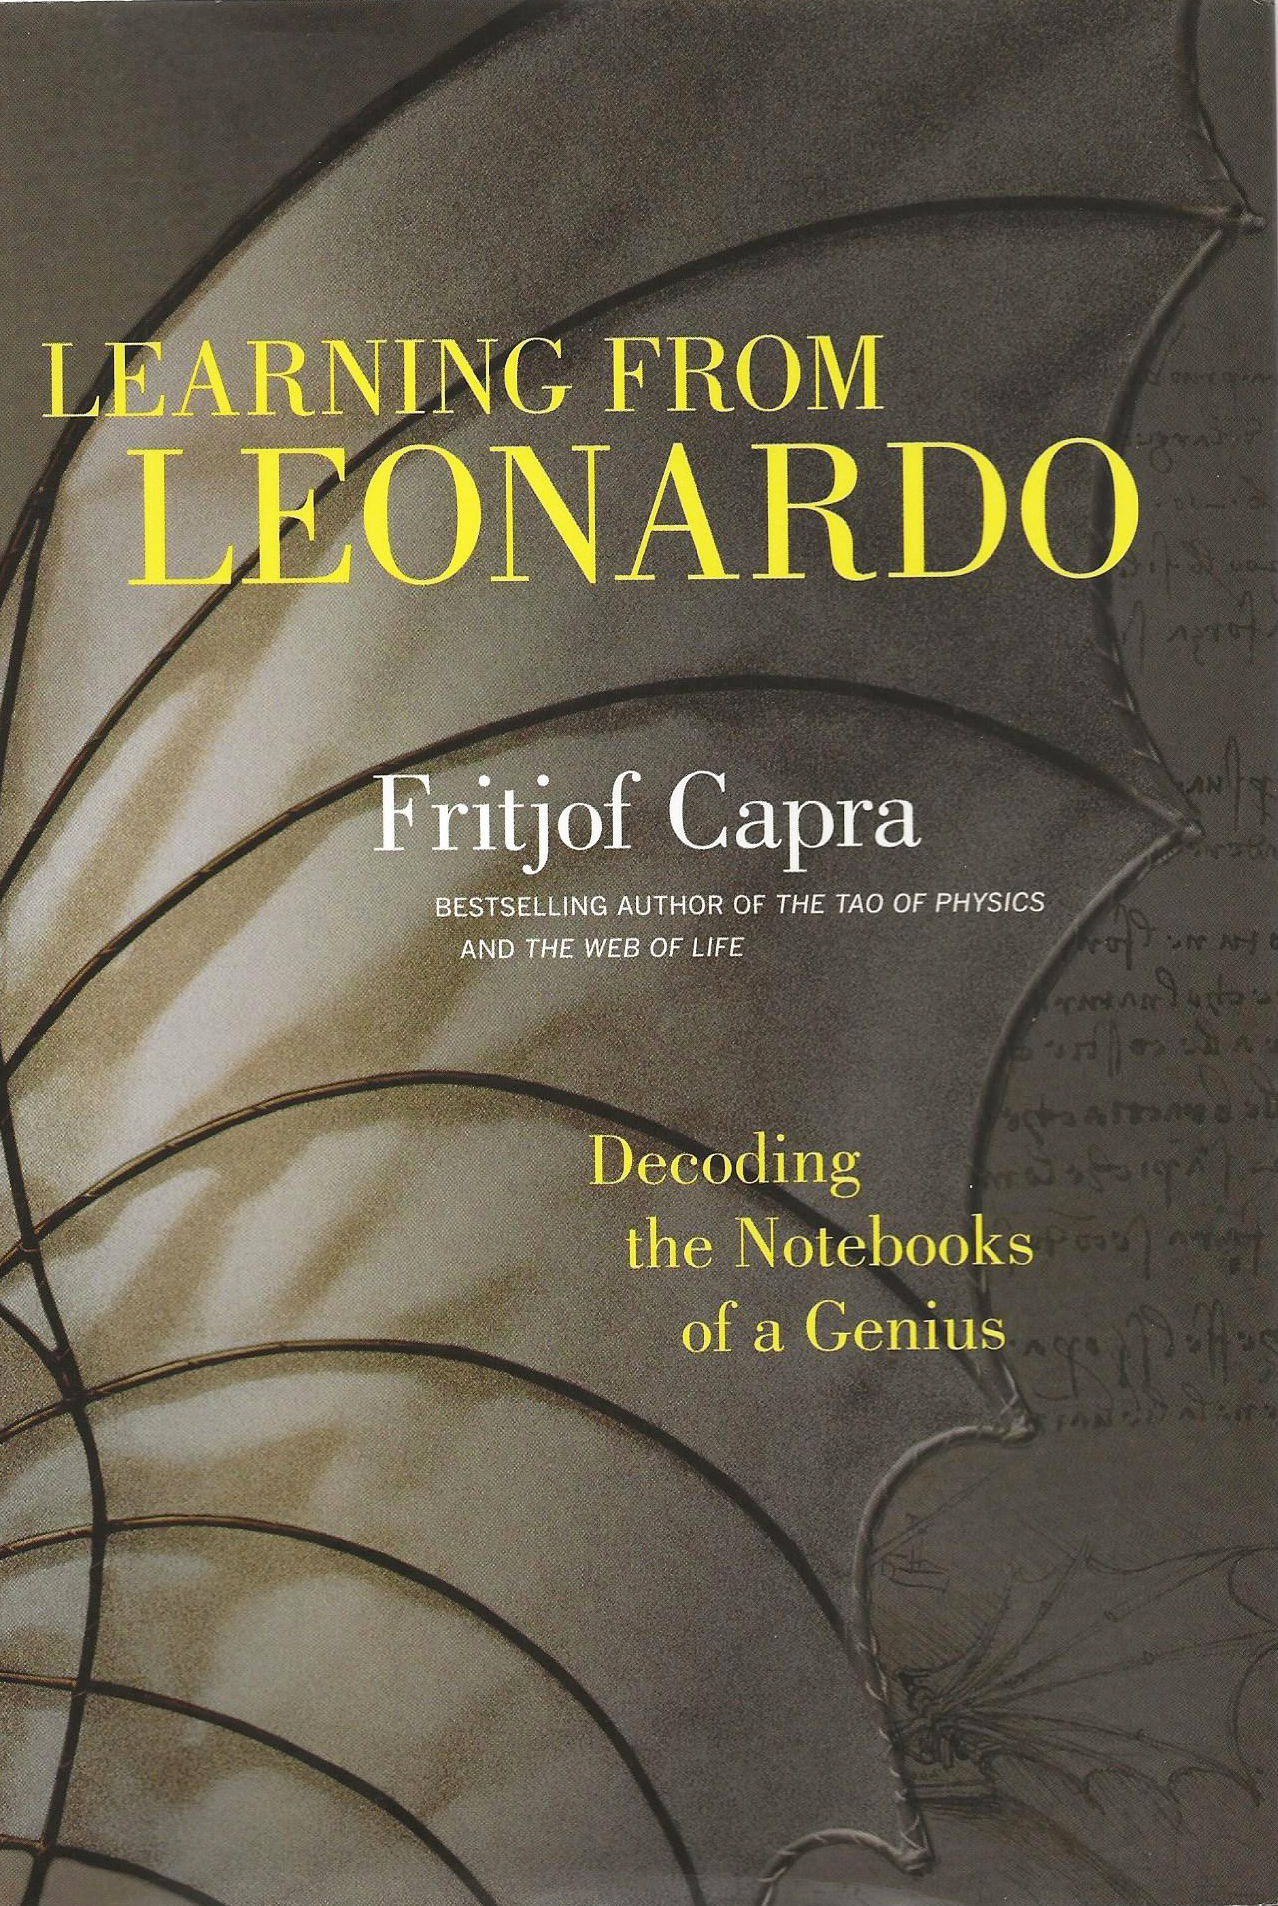 Cover, Capra, Fritjof. Learning from Leonardo. San Francisco: Berrett-Koehler, 2013.